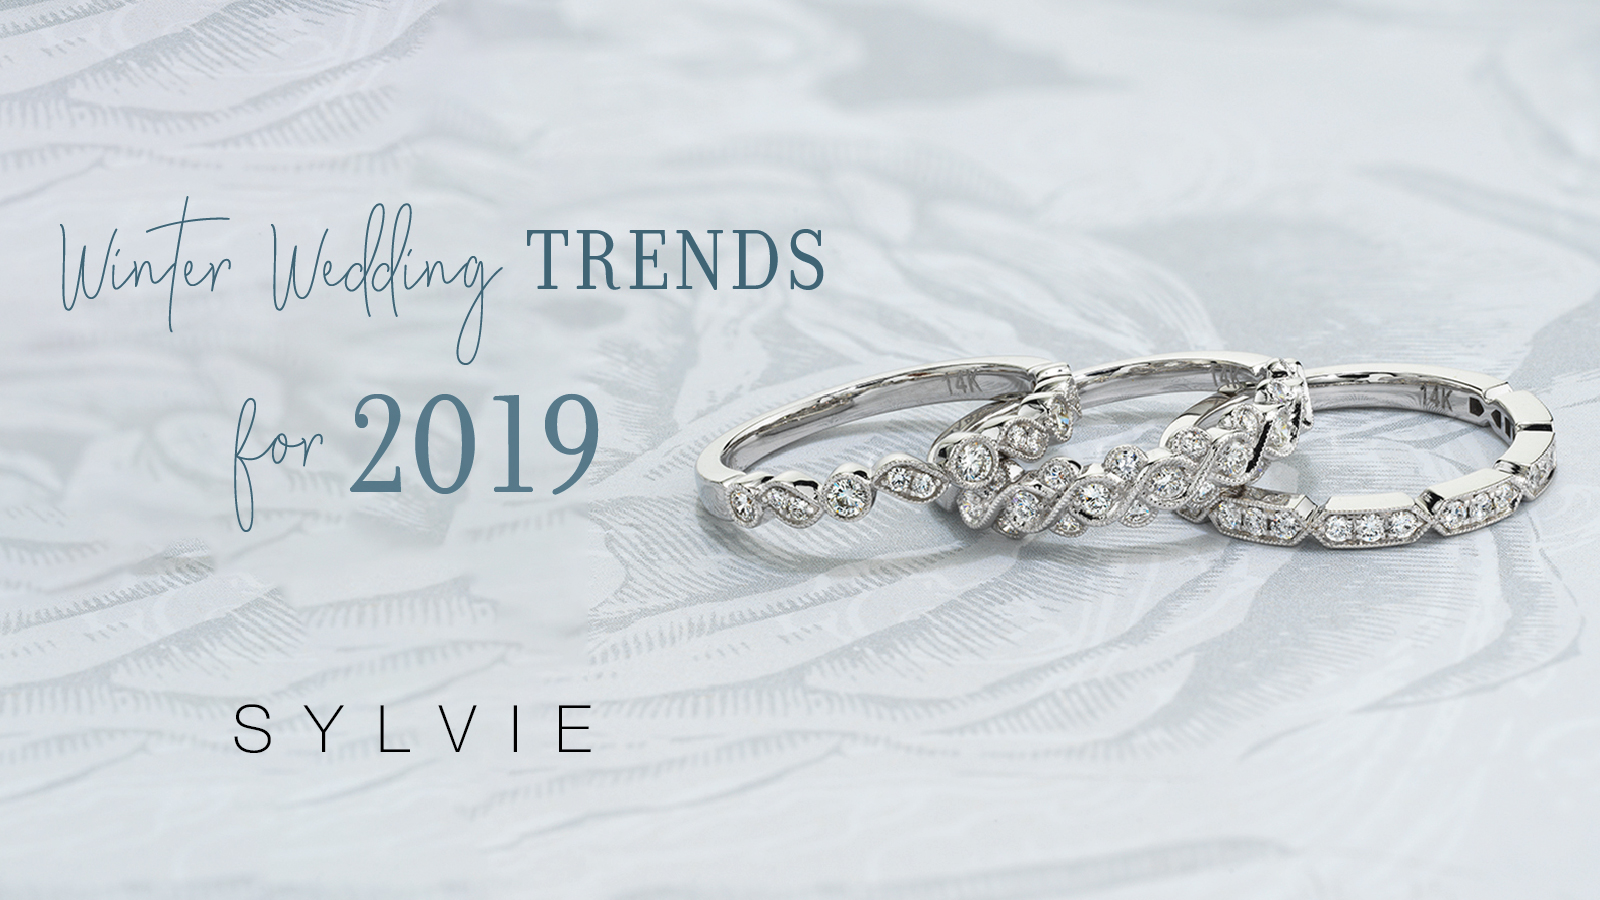 Winter Wedding Trends for 2019